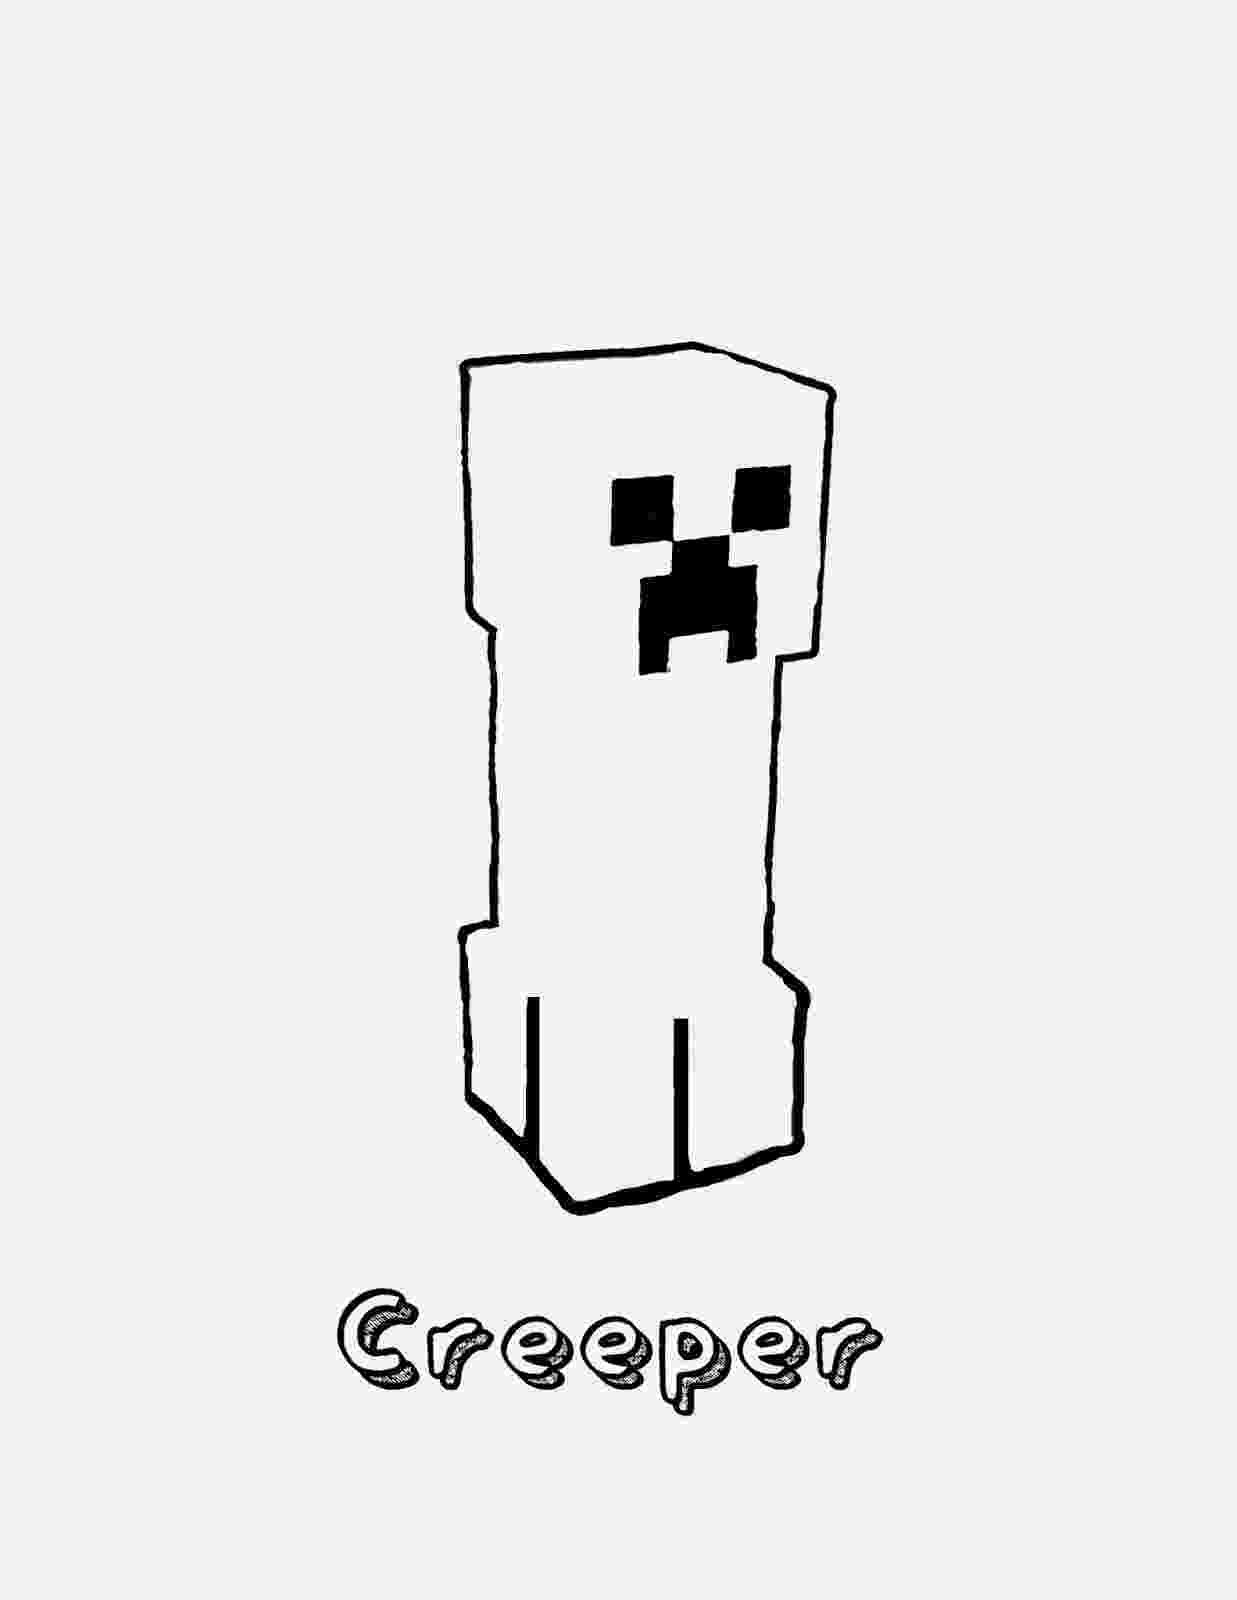 minecraft creeper pictures minecraft steve creeper enderman free printable coloring minecraft pictures creeper